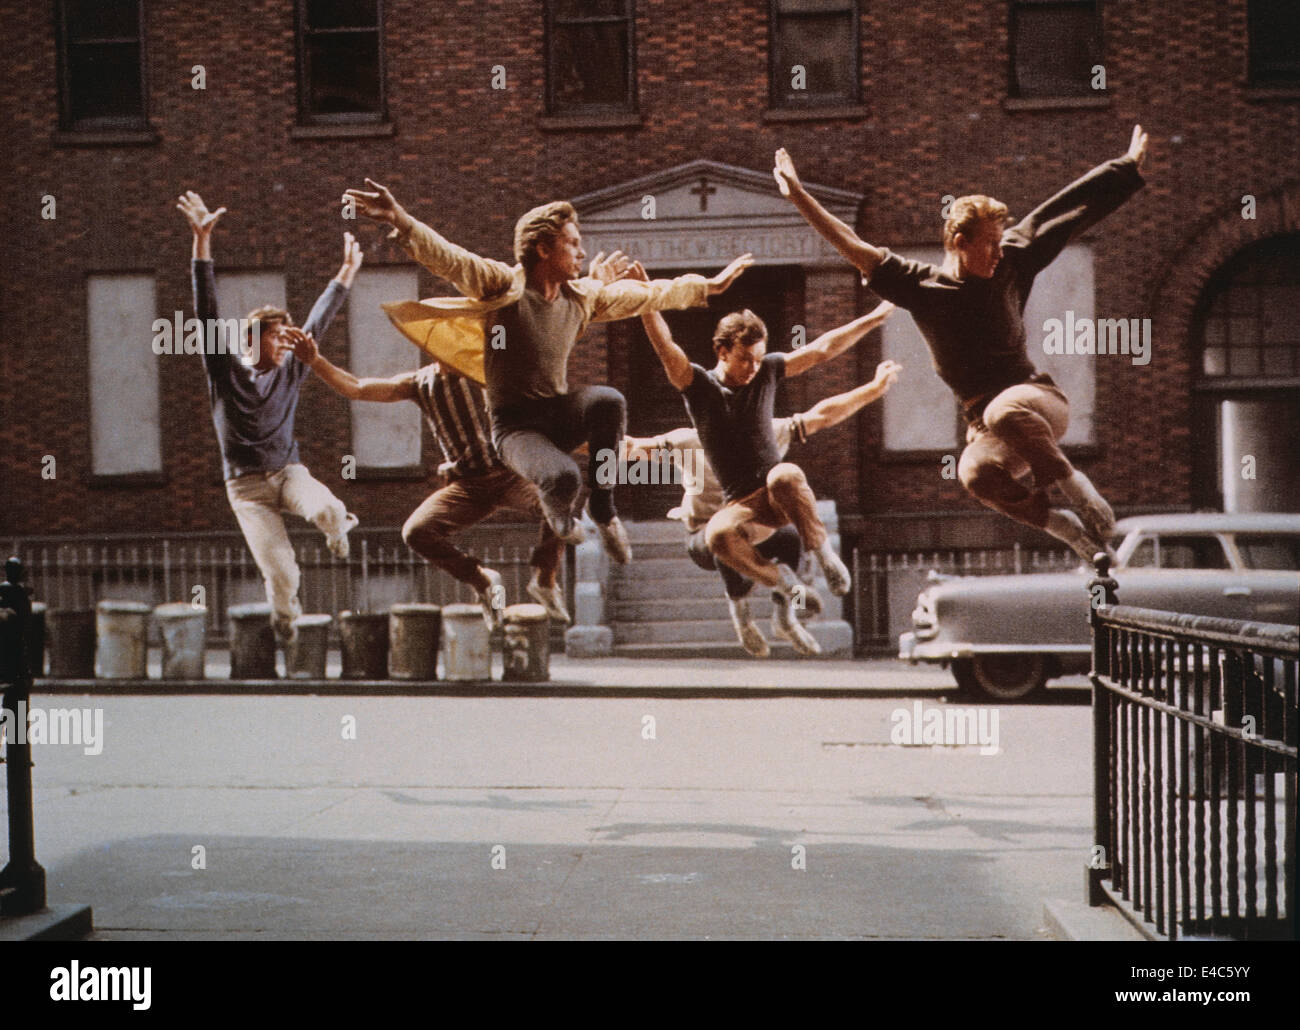 "gang and west side story West side story ★★★½ 1961 gang rivalry and ethnic tension on new york's west side erupts in a ground-breaking musical loosely based on shakespeare's ""romeo."